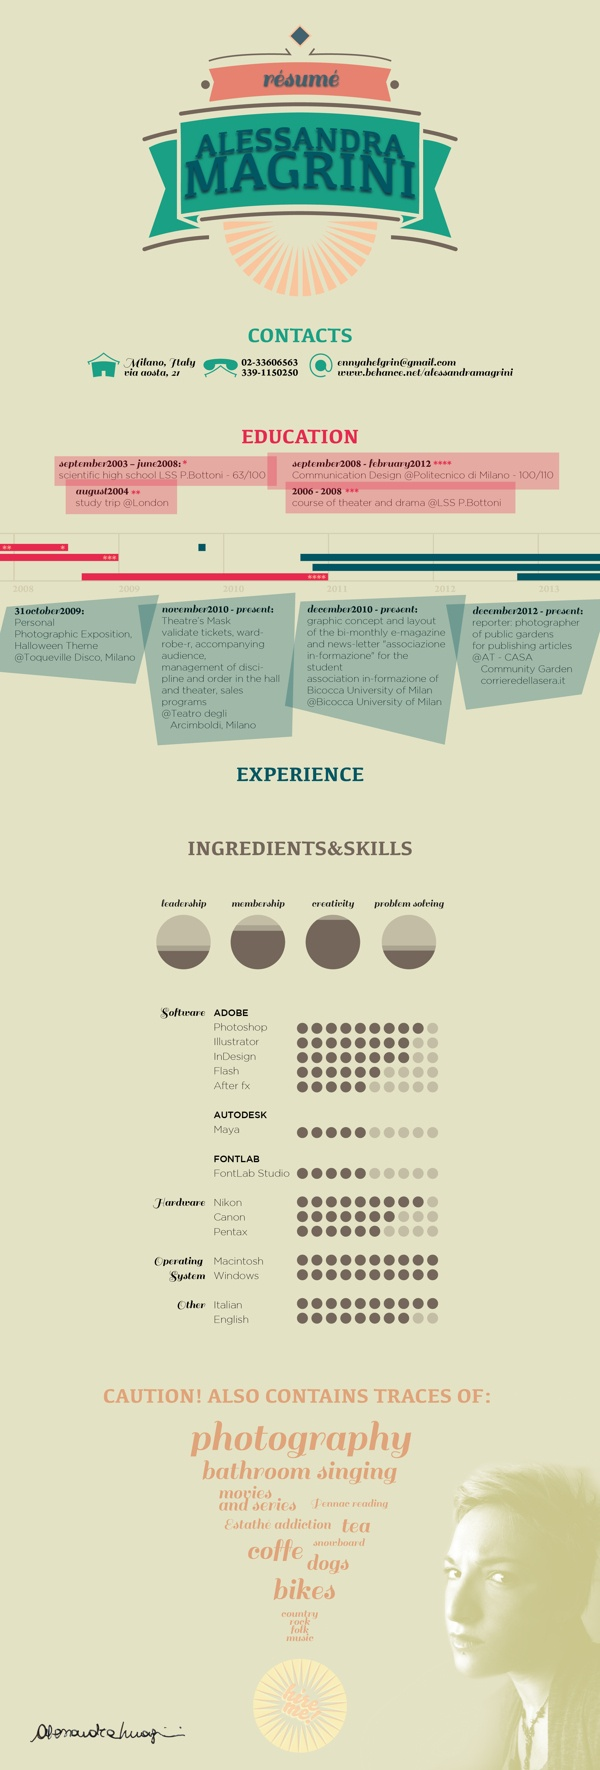 8 Best Graphic Design Resumes And Cover Letters Images On